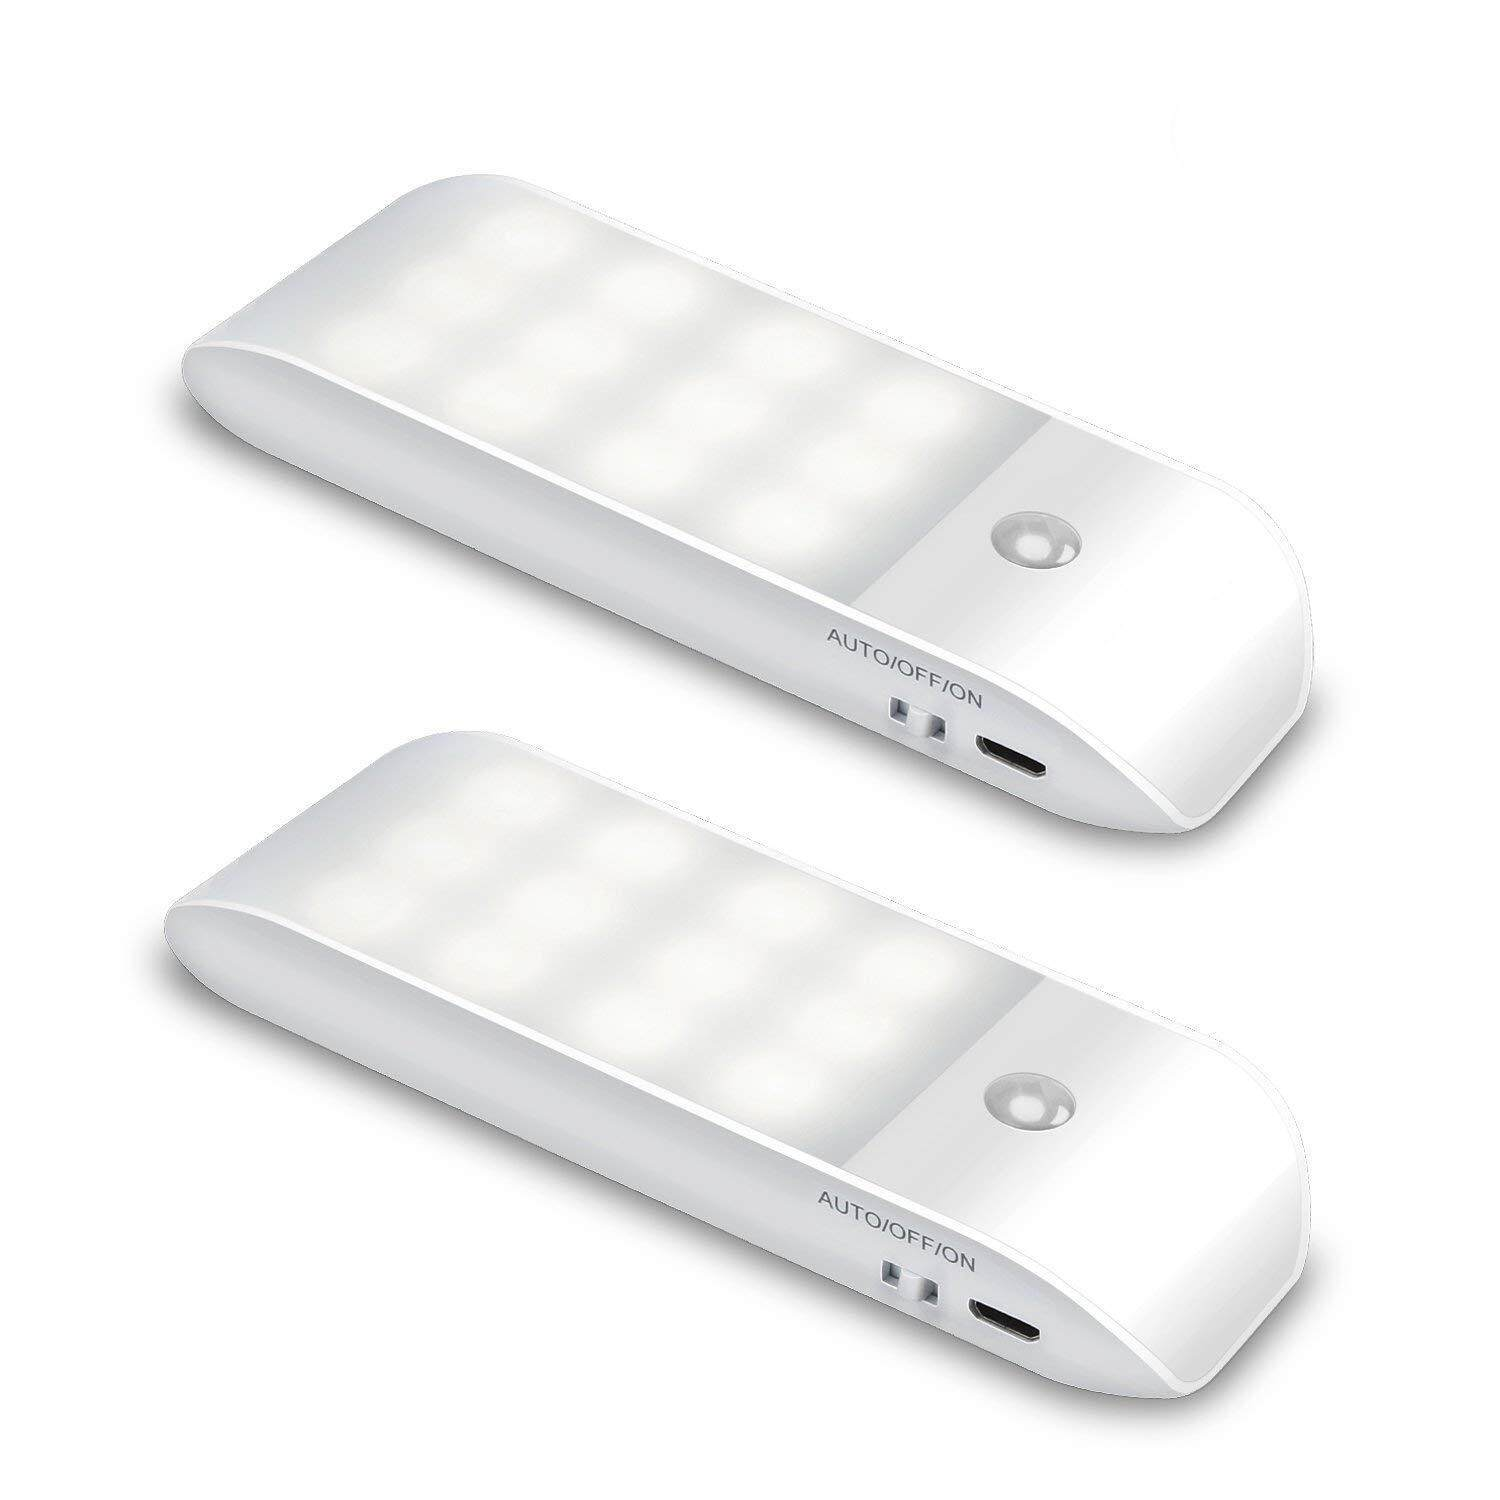 Motion Sensor Light, [2 Pack] Cupboard Night Light, USB Rechargeable Battery Powered Light with 24 LED, Removable Magnetic Strip Stick-On Wardrobe,Cabinet, Kitchen, Stairs, etc Free Shipping Singapore